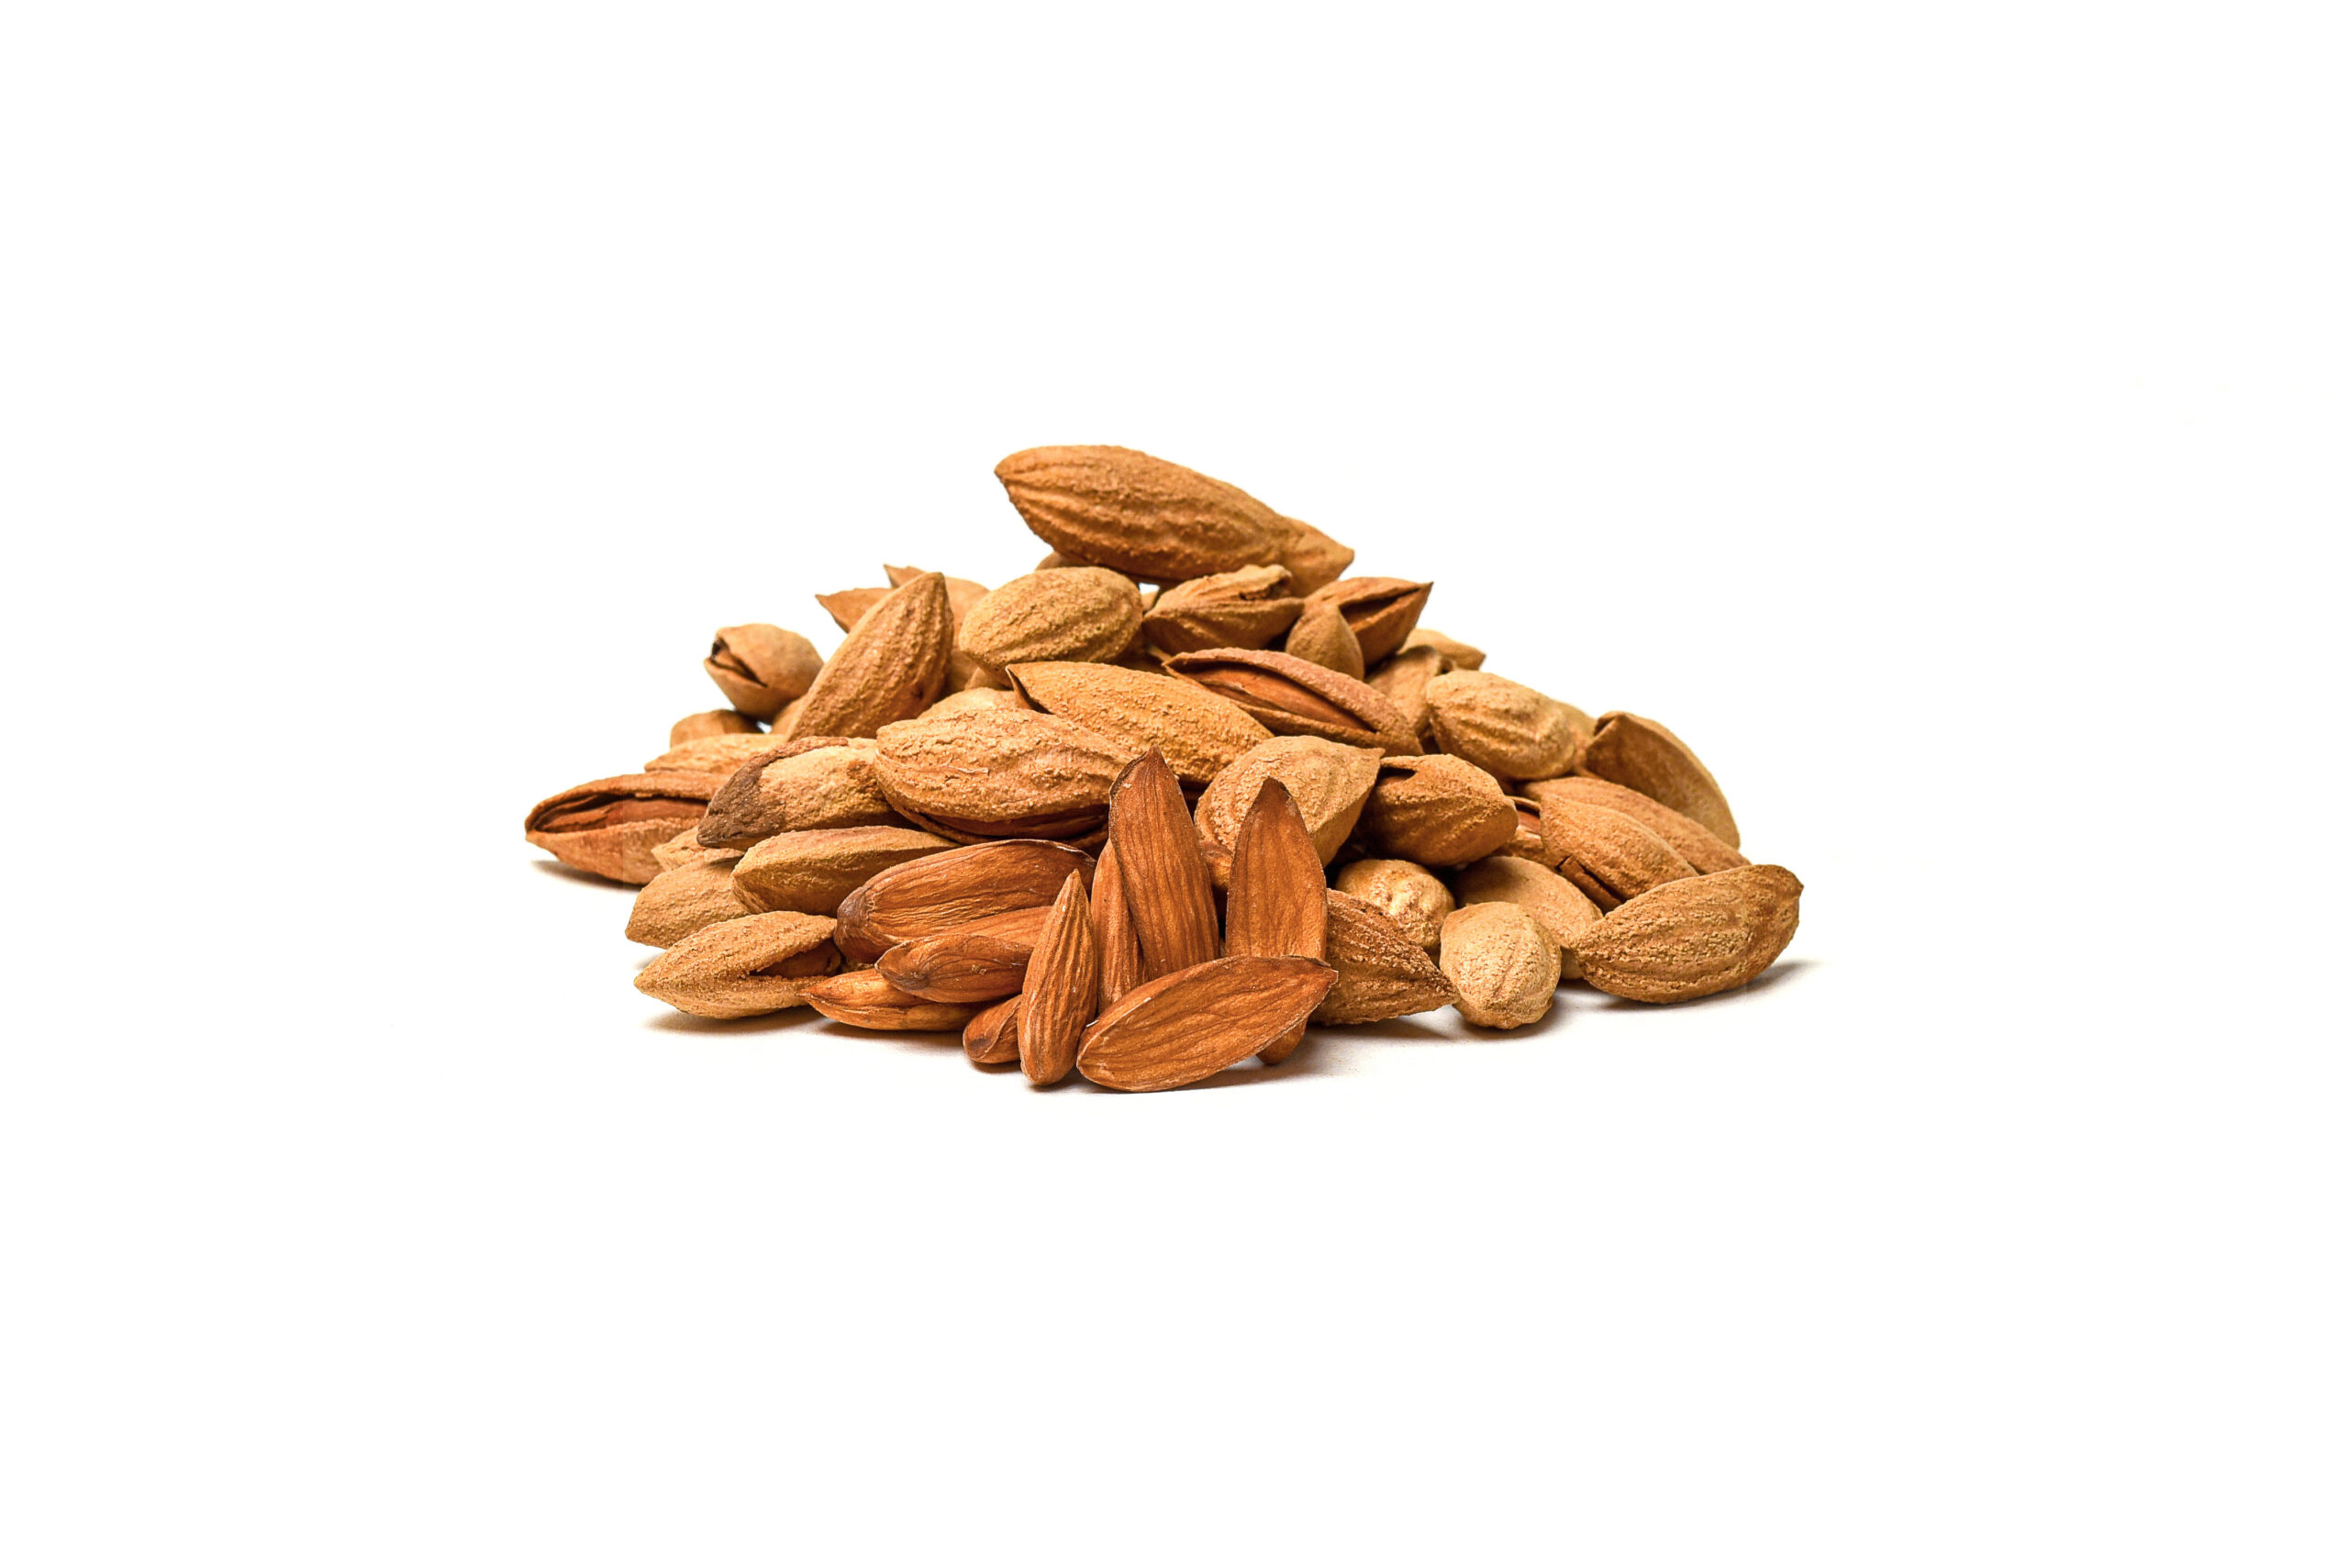 Roasted almond, shelled